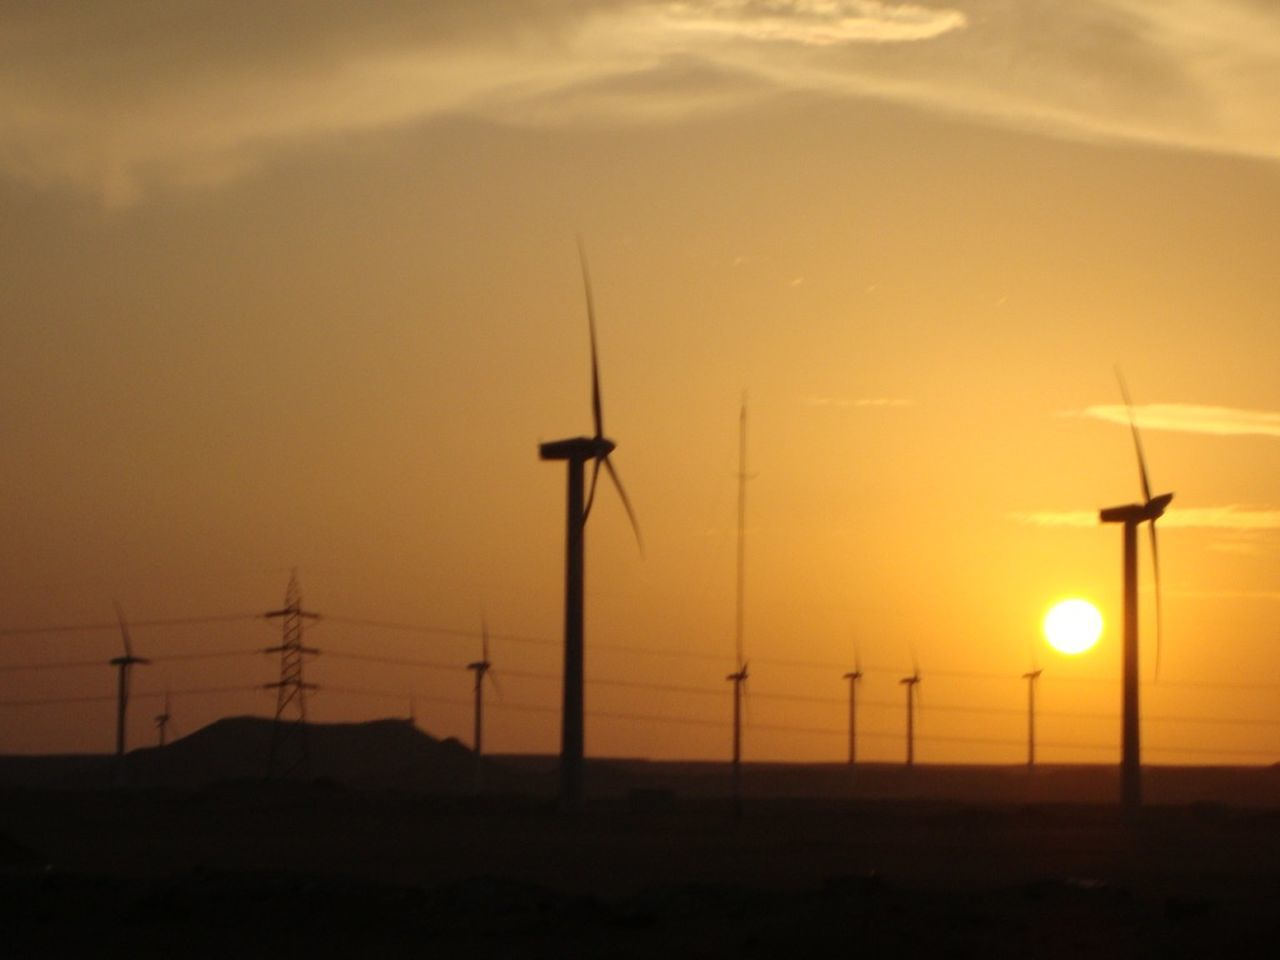 environmental conservation, alternative energy, wind turbine, wind power, fuel and power generation, renewable energy, sunset, windmill, technology, industrial windmill, electricity, orange color, silhouette, nature, no people, outdoors, sky, low angle view, beauty in nature, tranquil scene, tranquility, rural scene, sustainable resources, scenics, traditional windmill, day